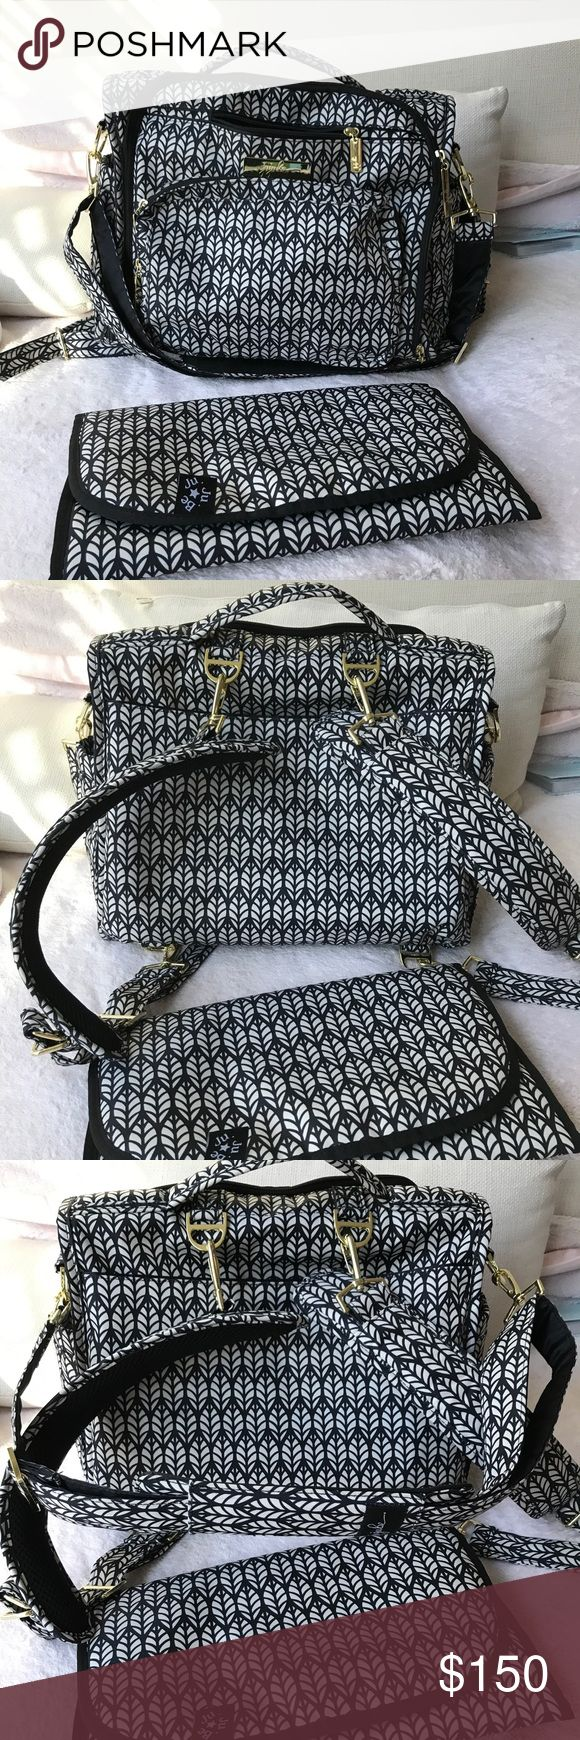 Jujube BFF diaper bag Only few time used very clean like new jujube Bags